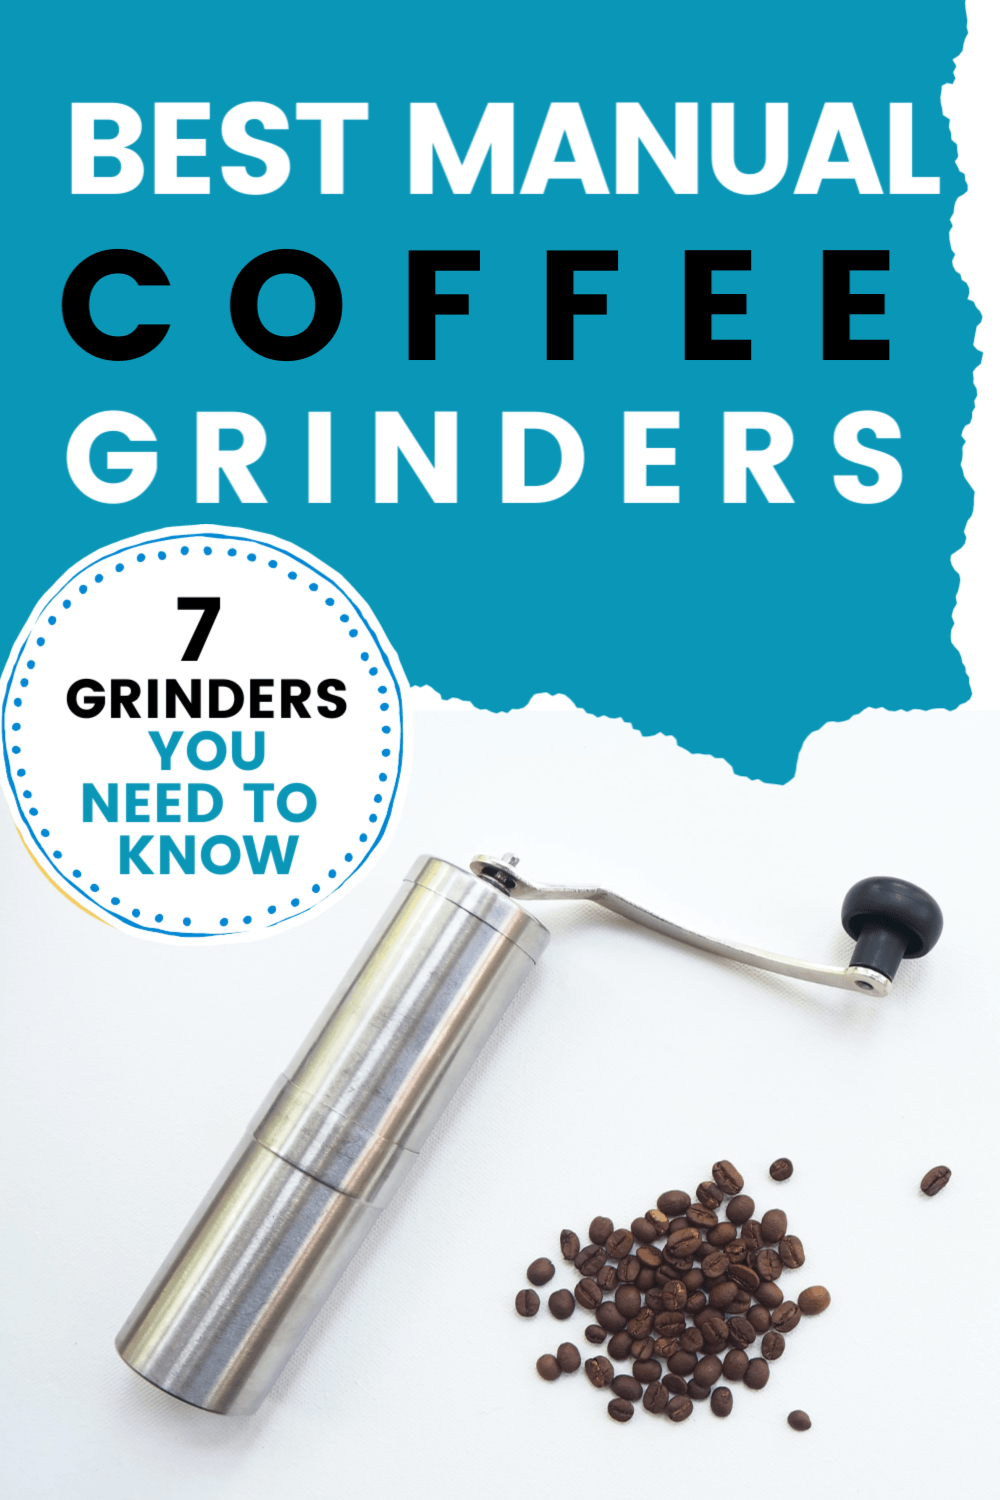 The 7 Best Manual Coffee Grinders In 2020. Take Control Over Your Coffee!